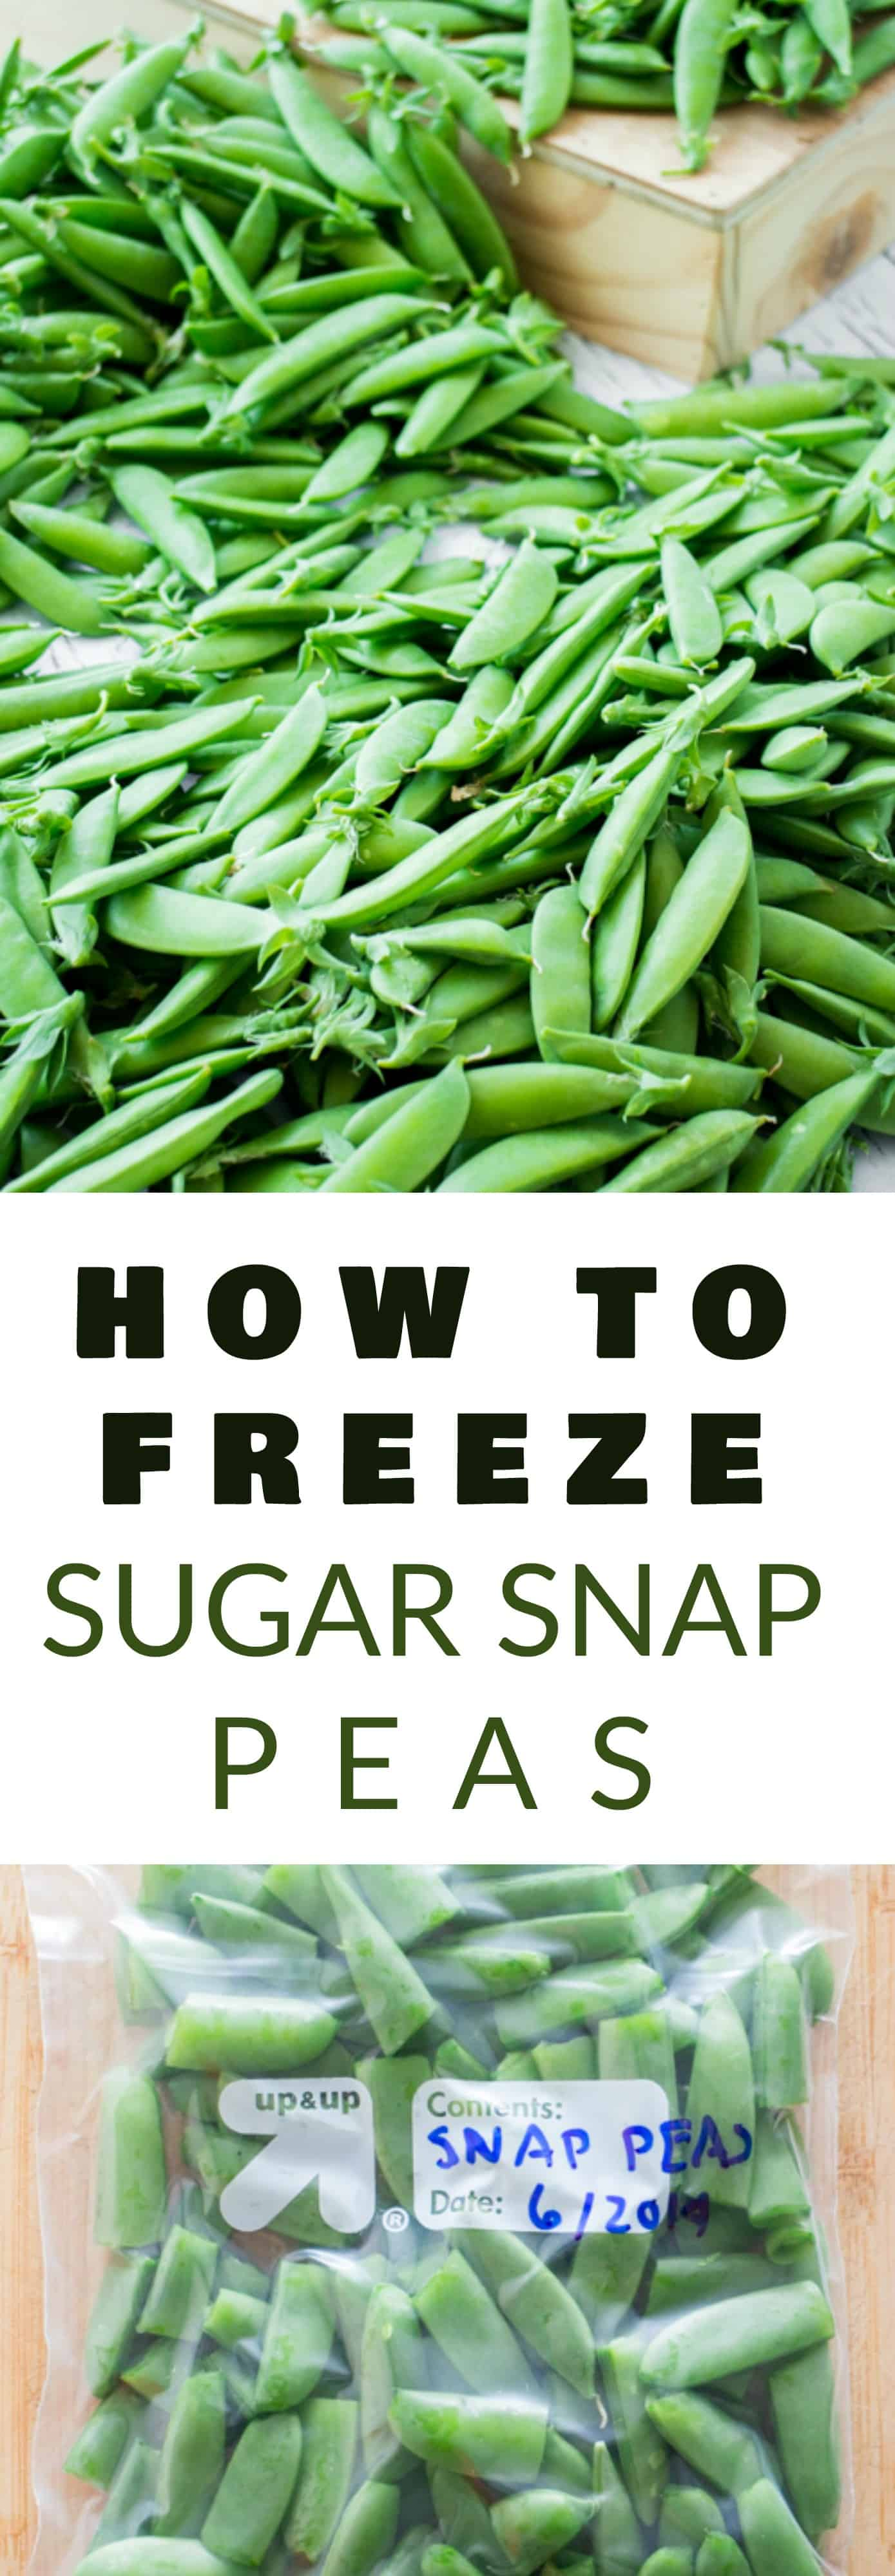 EASY Step by Step Instructions on how to freeze Sugar Snap Peas without blanching! This is a simple way to preserve your Summer Sugar Snap Peas to last for months without needing to can them!  I love freezing peas to use in Winter soups, casseroles and stir fry meals!